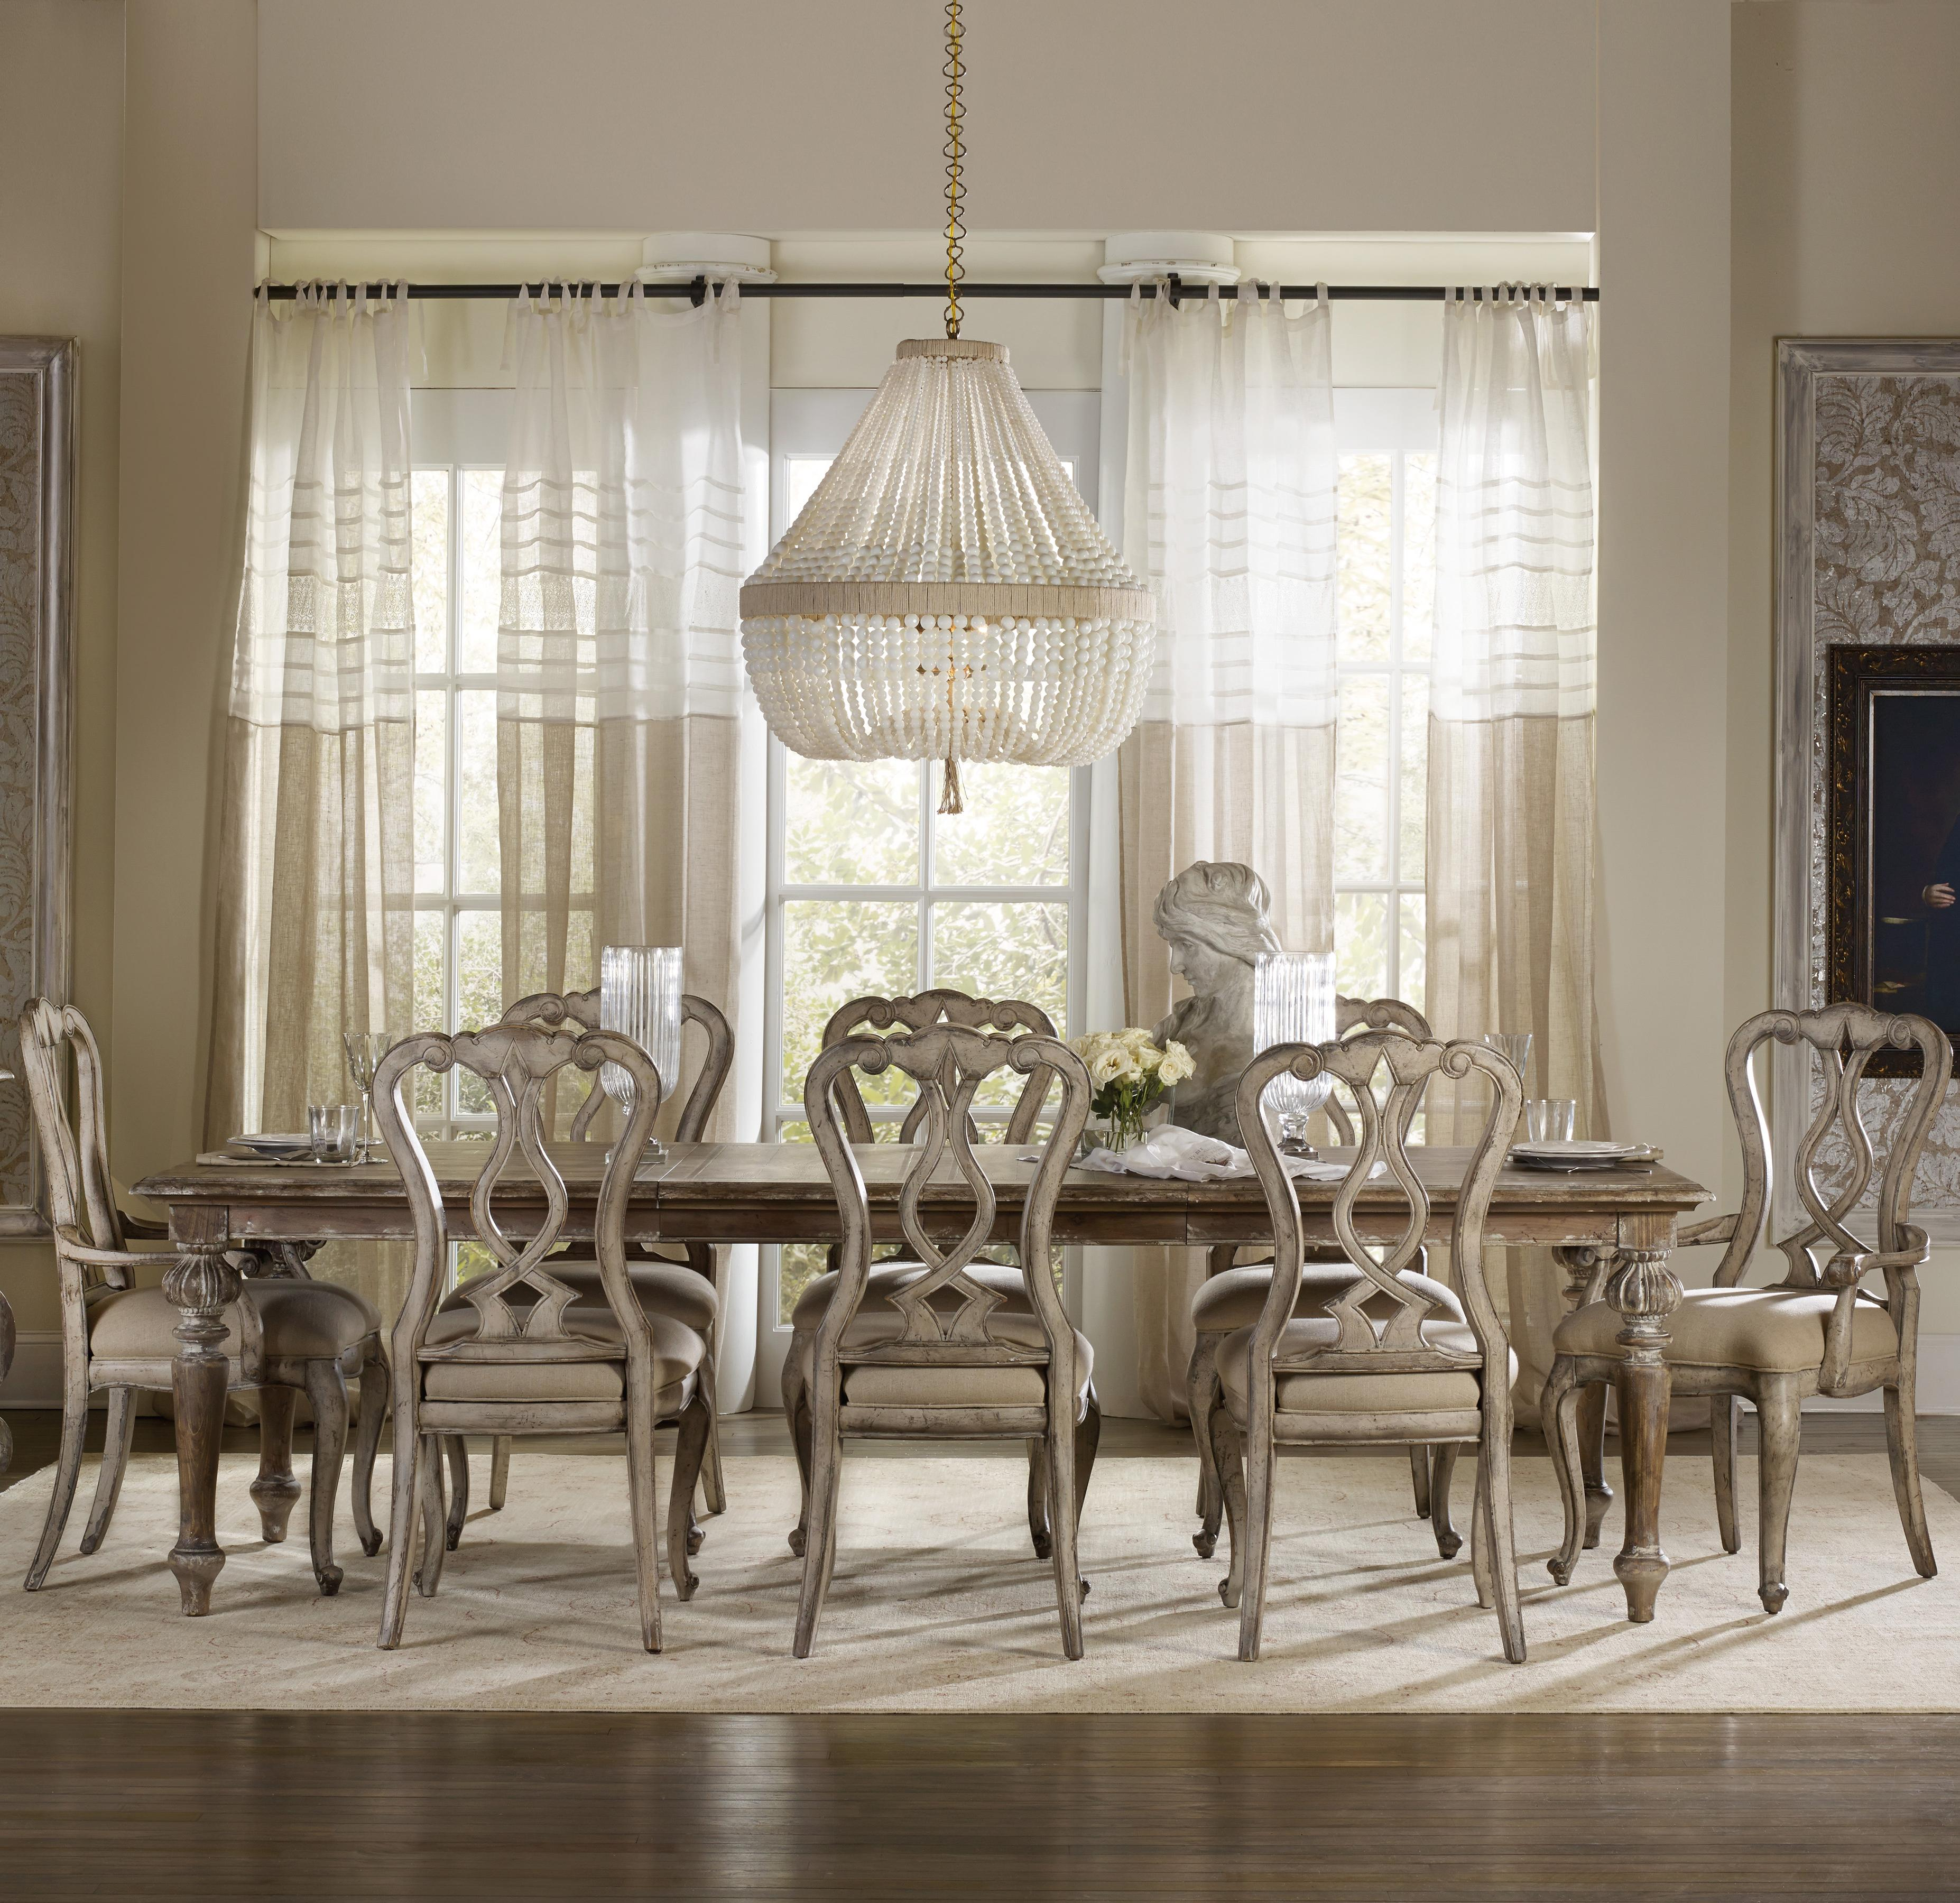 Chatelet 9 Piece Dining Set by Hooker Furniture at Miller Waldrop Furniture and Decor